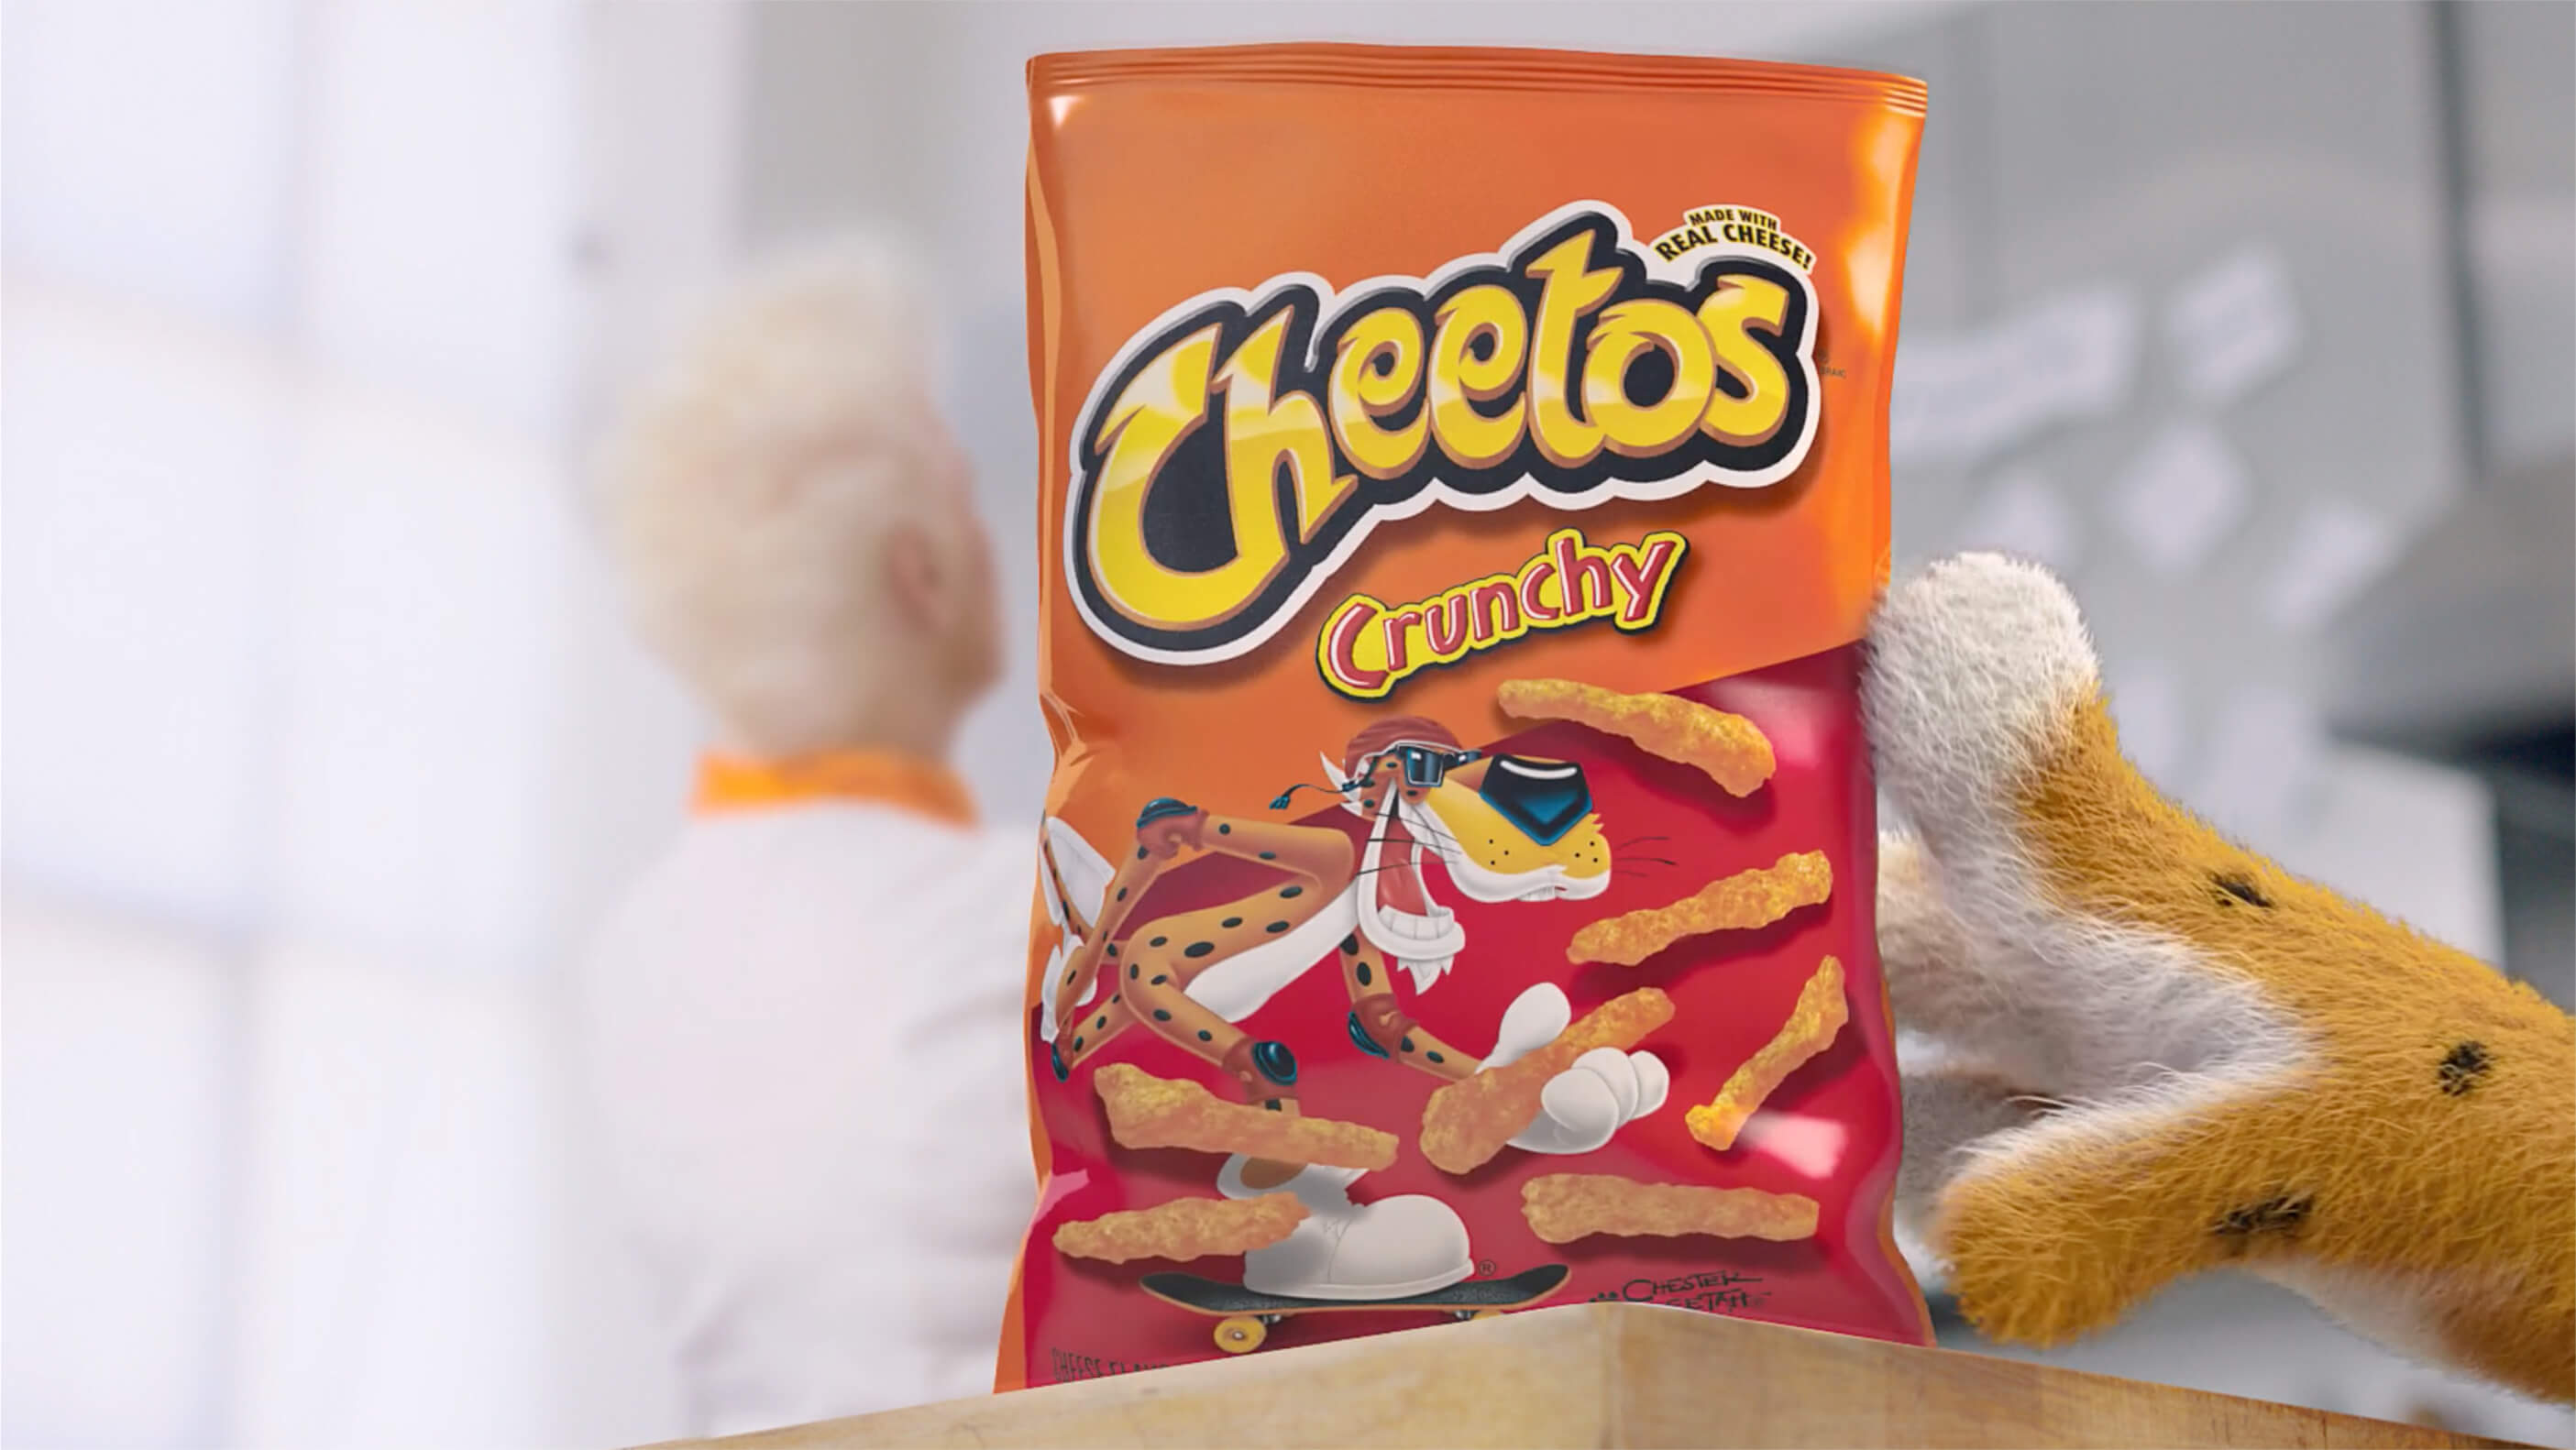 Video thumbnail: Spotted in NYC: Cheetos' first restaurant, the spotted cheetah